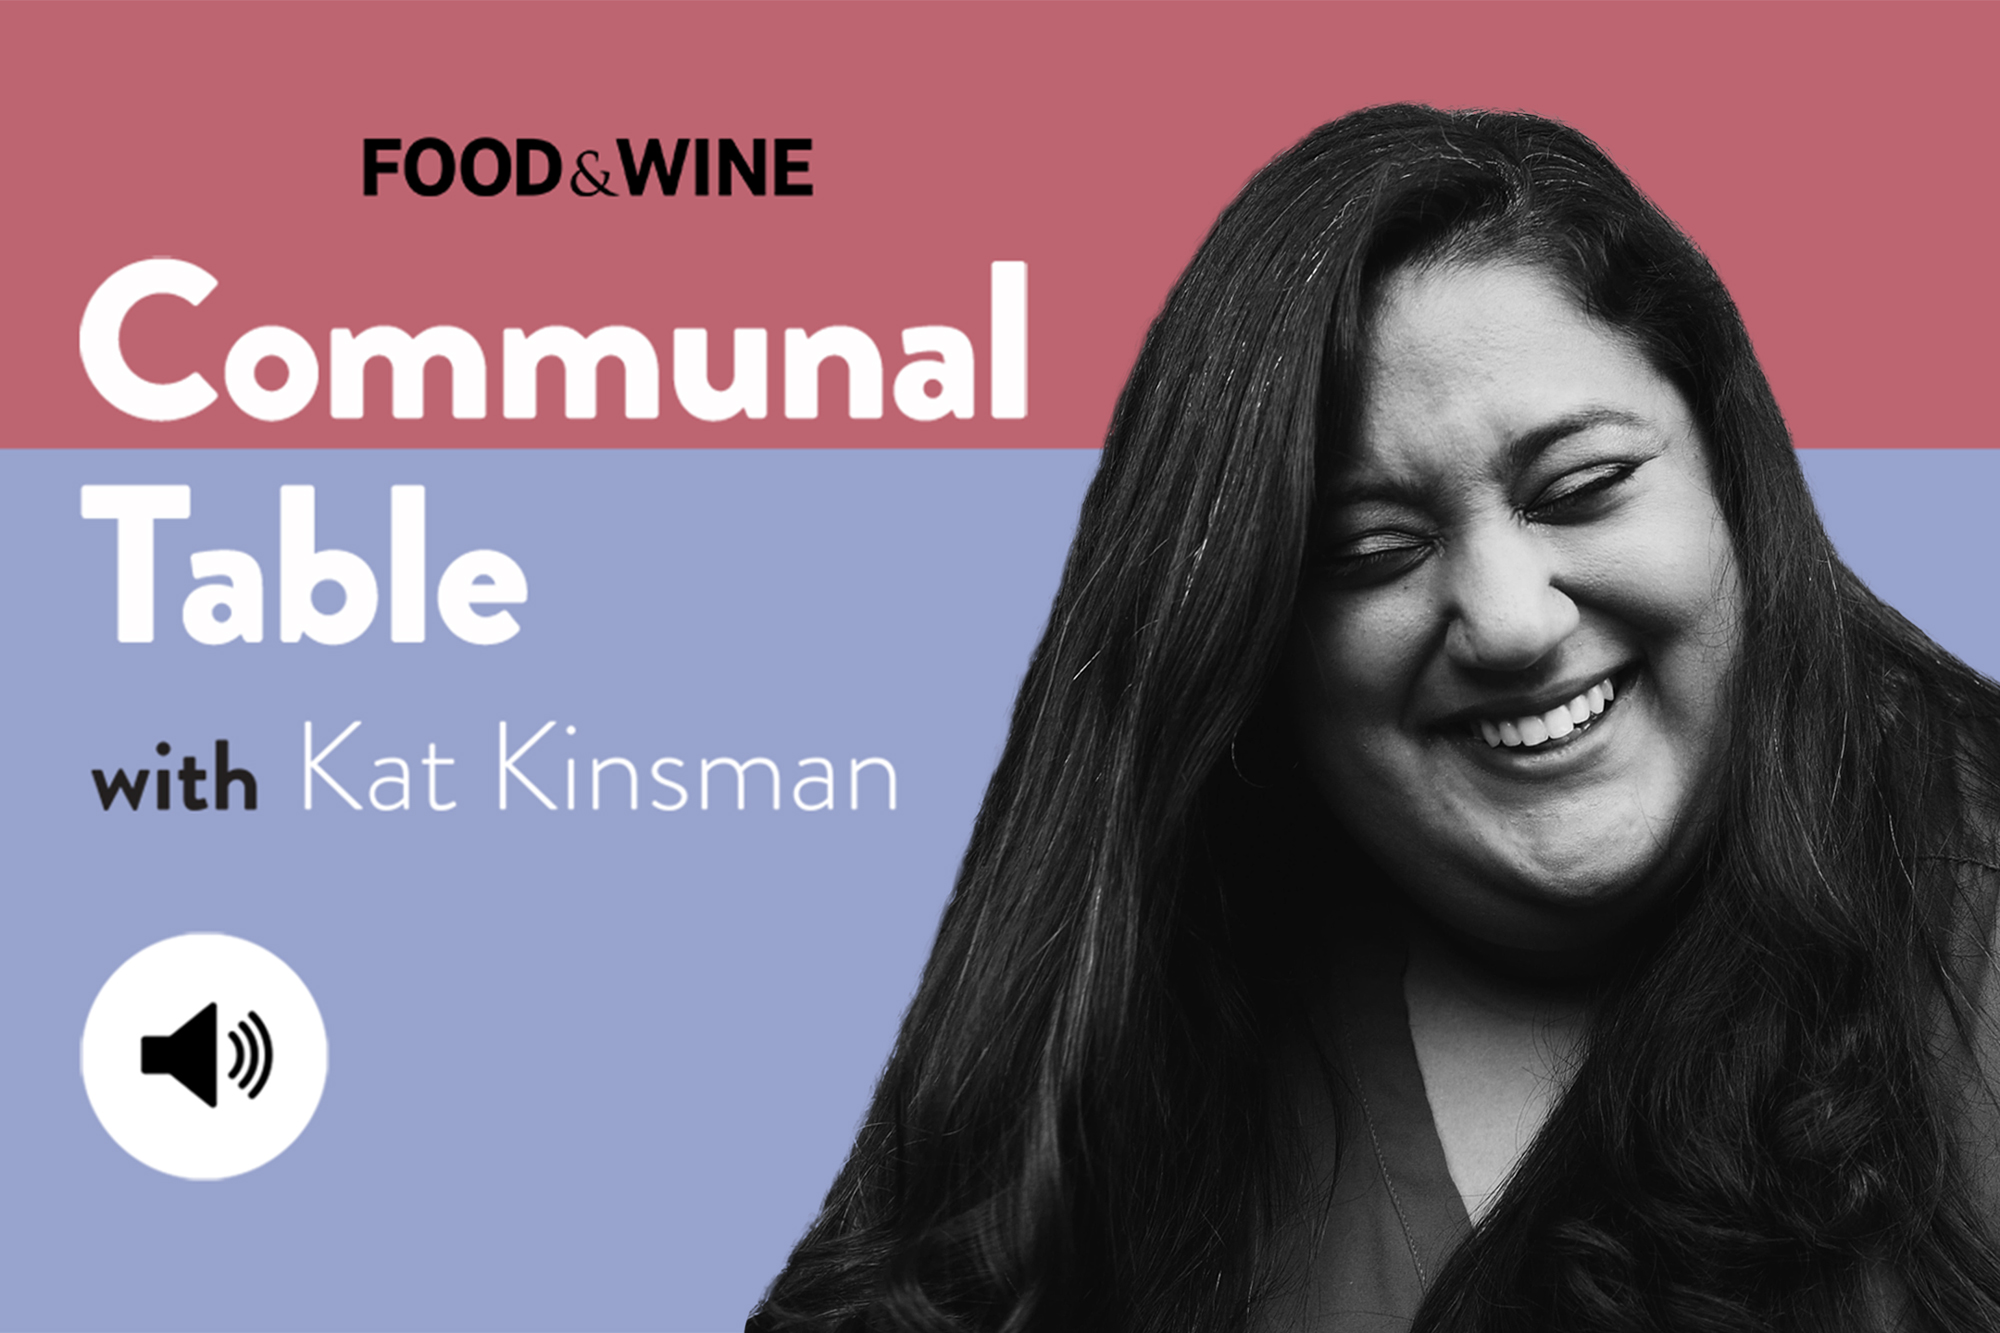 Communal Table with Kat Kinsman featuring Khushbu Shah on Best New Chefs